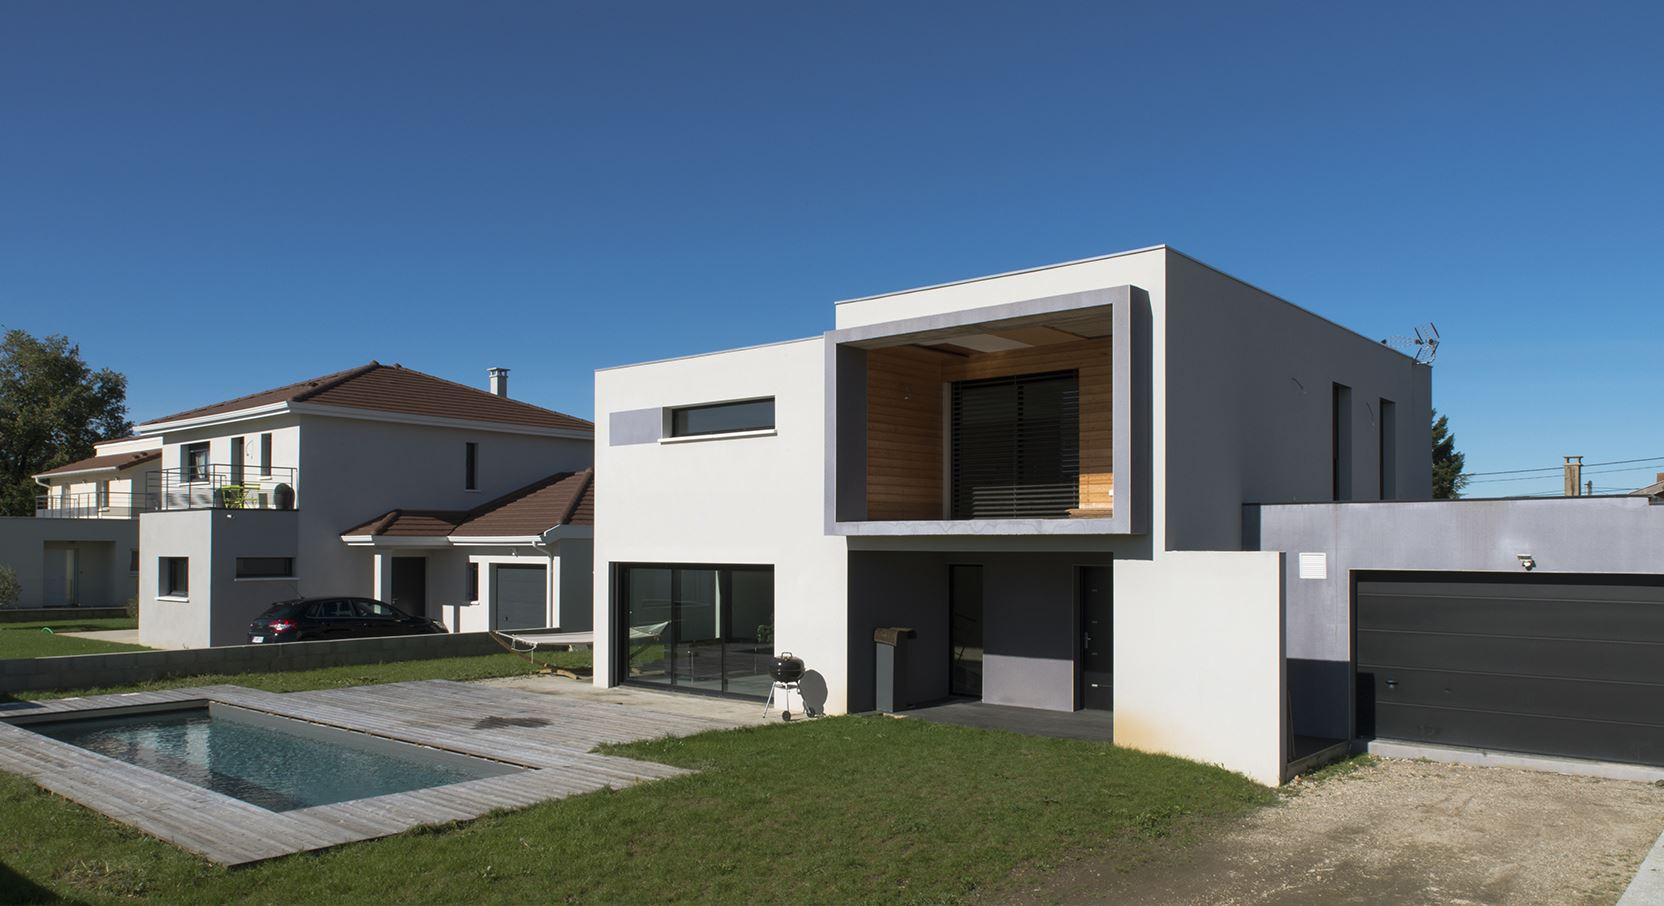 Populaire Maison architecte contemporaine - Mc immo AX34